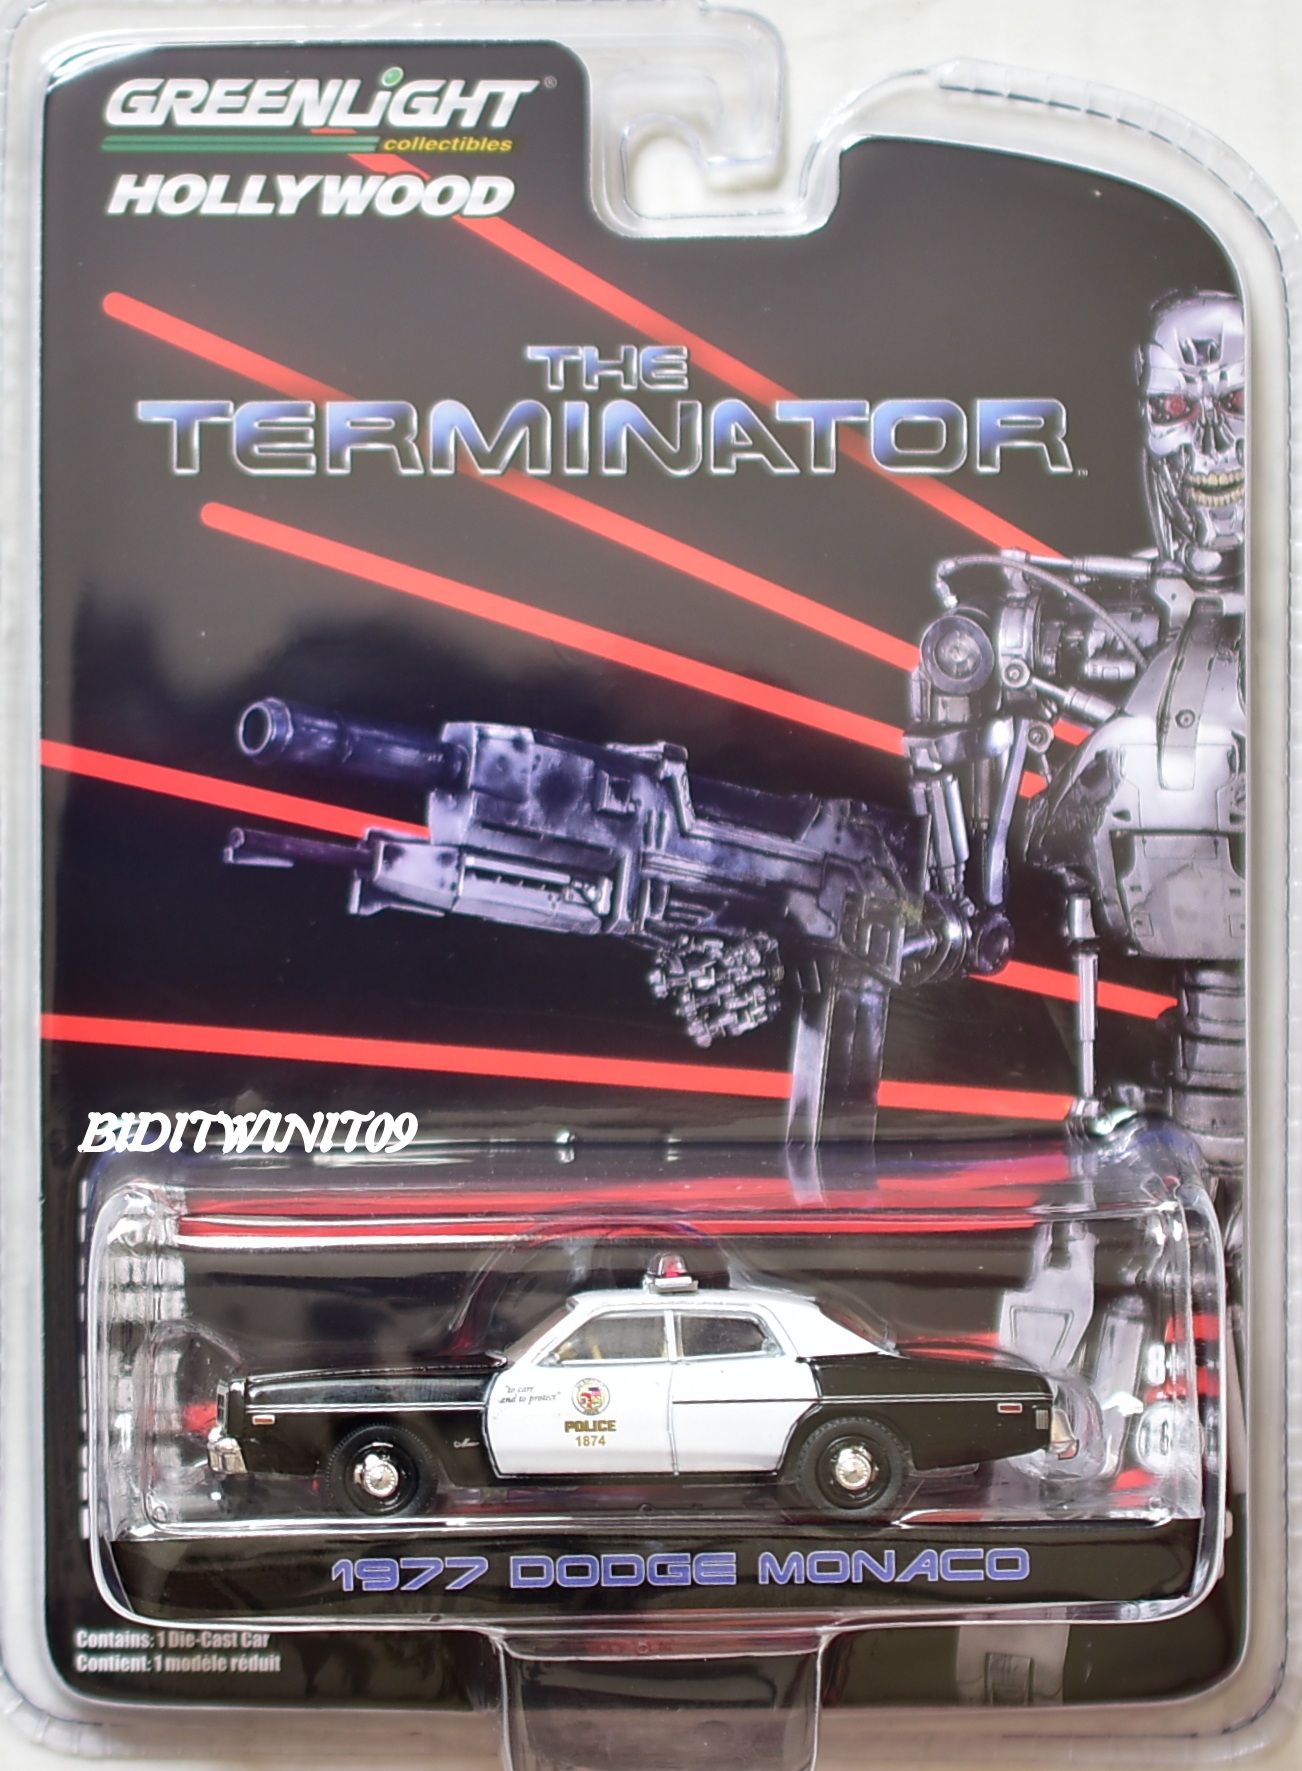 GREENLIGHT HOLLYWOOD SERIES 19 1:64 THE TERMINATOR 1977 DODGE MONACO POLICE